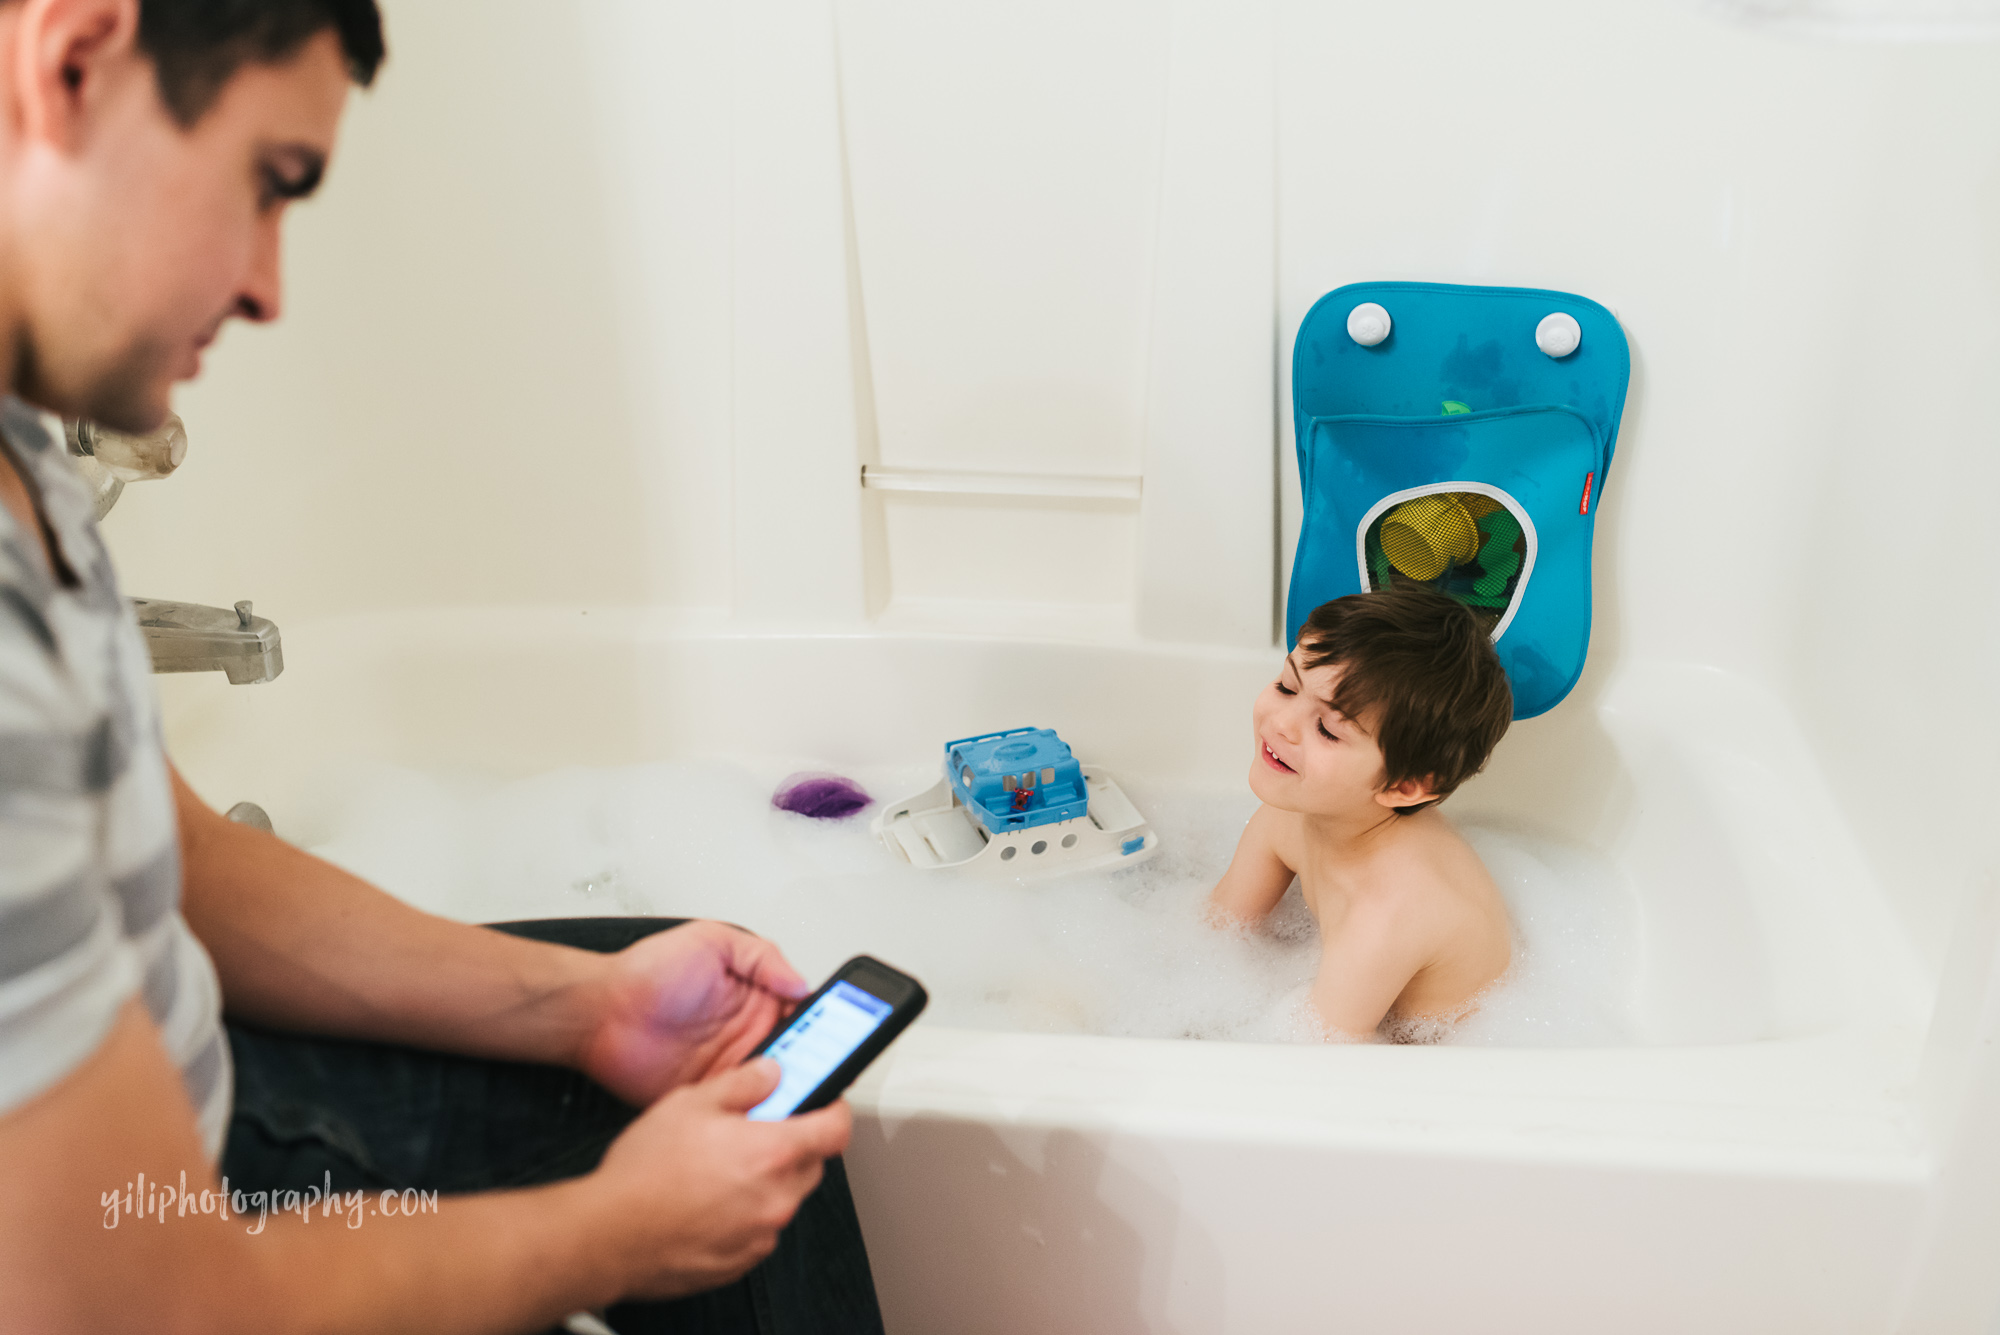 seattle toddler in bath with dad on smartphone